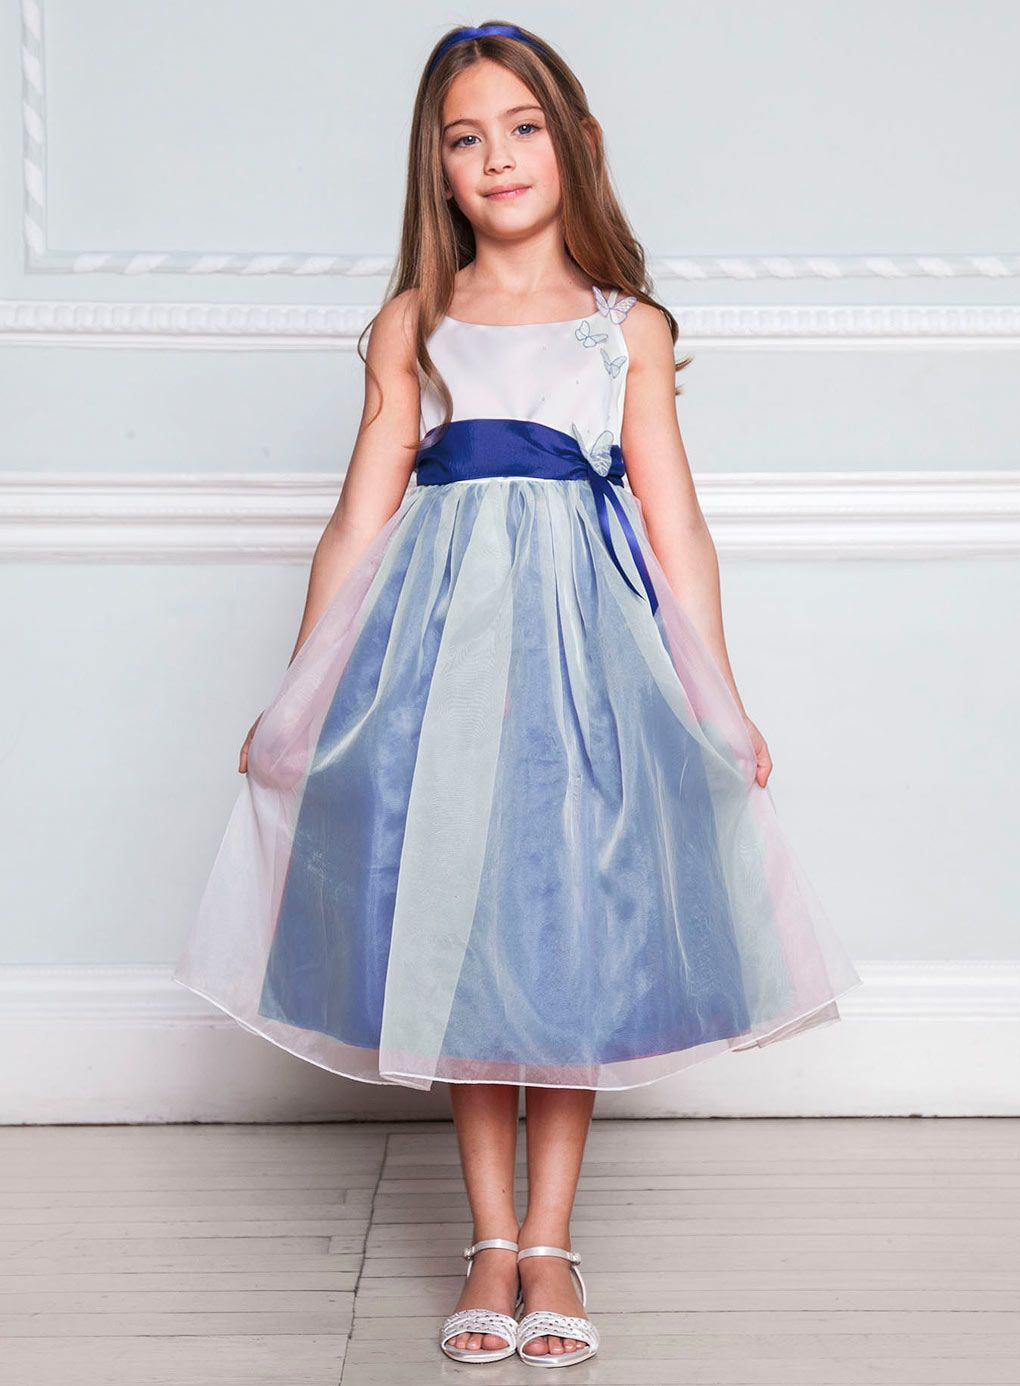 Younggirlsbridesmaiddresses lela butterfly sapphire younggirlsbridesmaiddresses lela butterfly sapphire bridesmaid dress ombrellifo Image collections